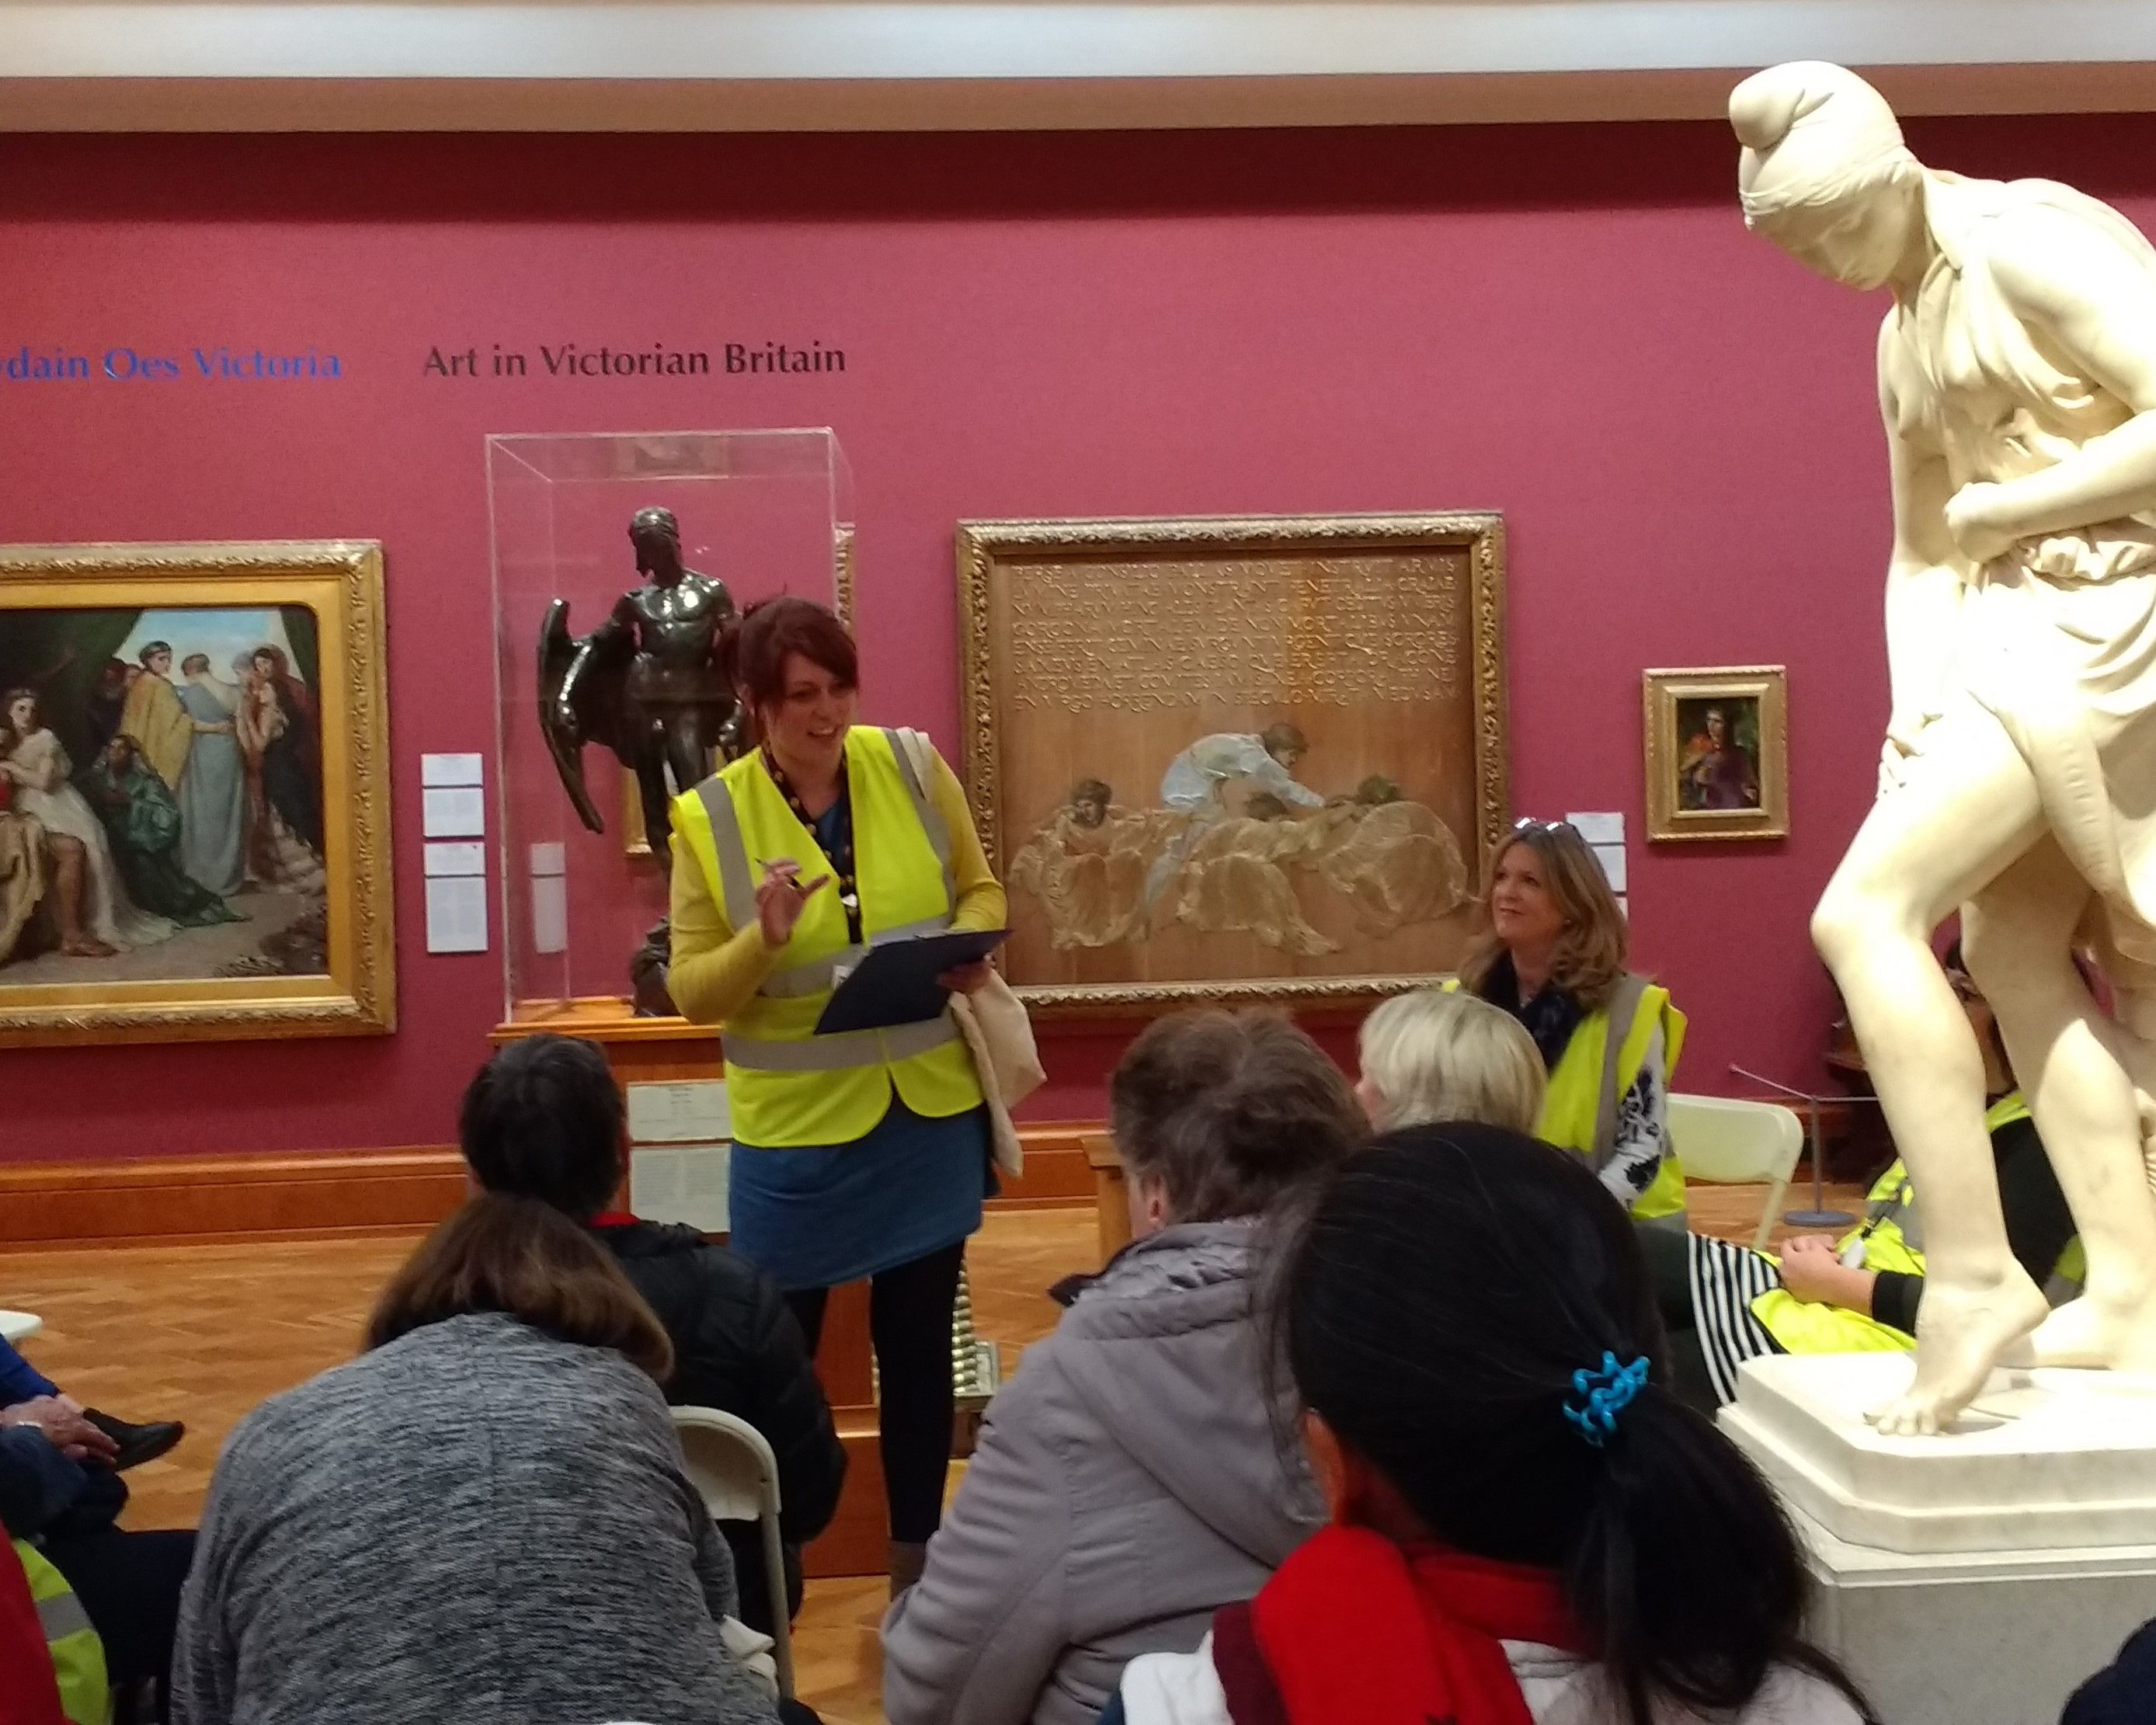 A crowd of people sitting in the Victorian Art gallery at National Museum Cardiff, listening to a tour guide